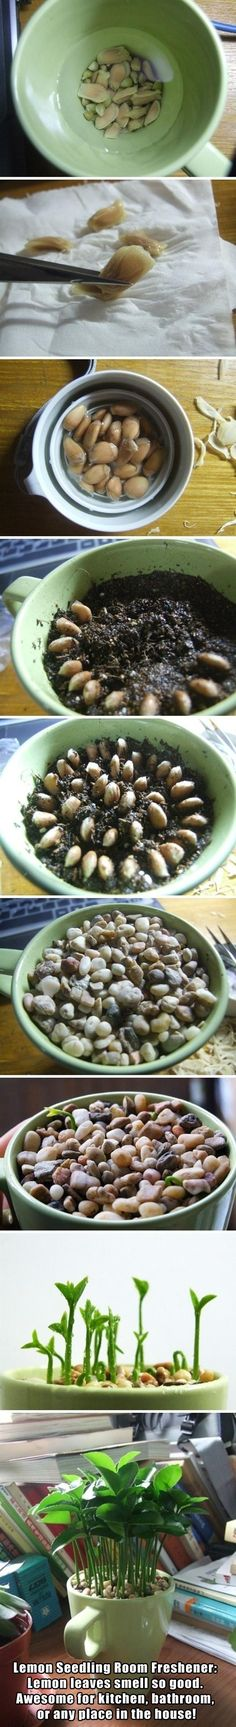 Small Plant Grown From Lemon Seeds. 1. Soak lemons seeds overnight 2. Gently remove outer layer of seeds 3. Put back into water as you prepare soil. 4. Plant lemon seeds in a circle pattern. 5. Place small pebbles on top of seeds 6. Water occasionally and watch it grow. http://thehomesteadsurvival.com/grow-lemons-seeds/